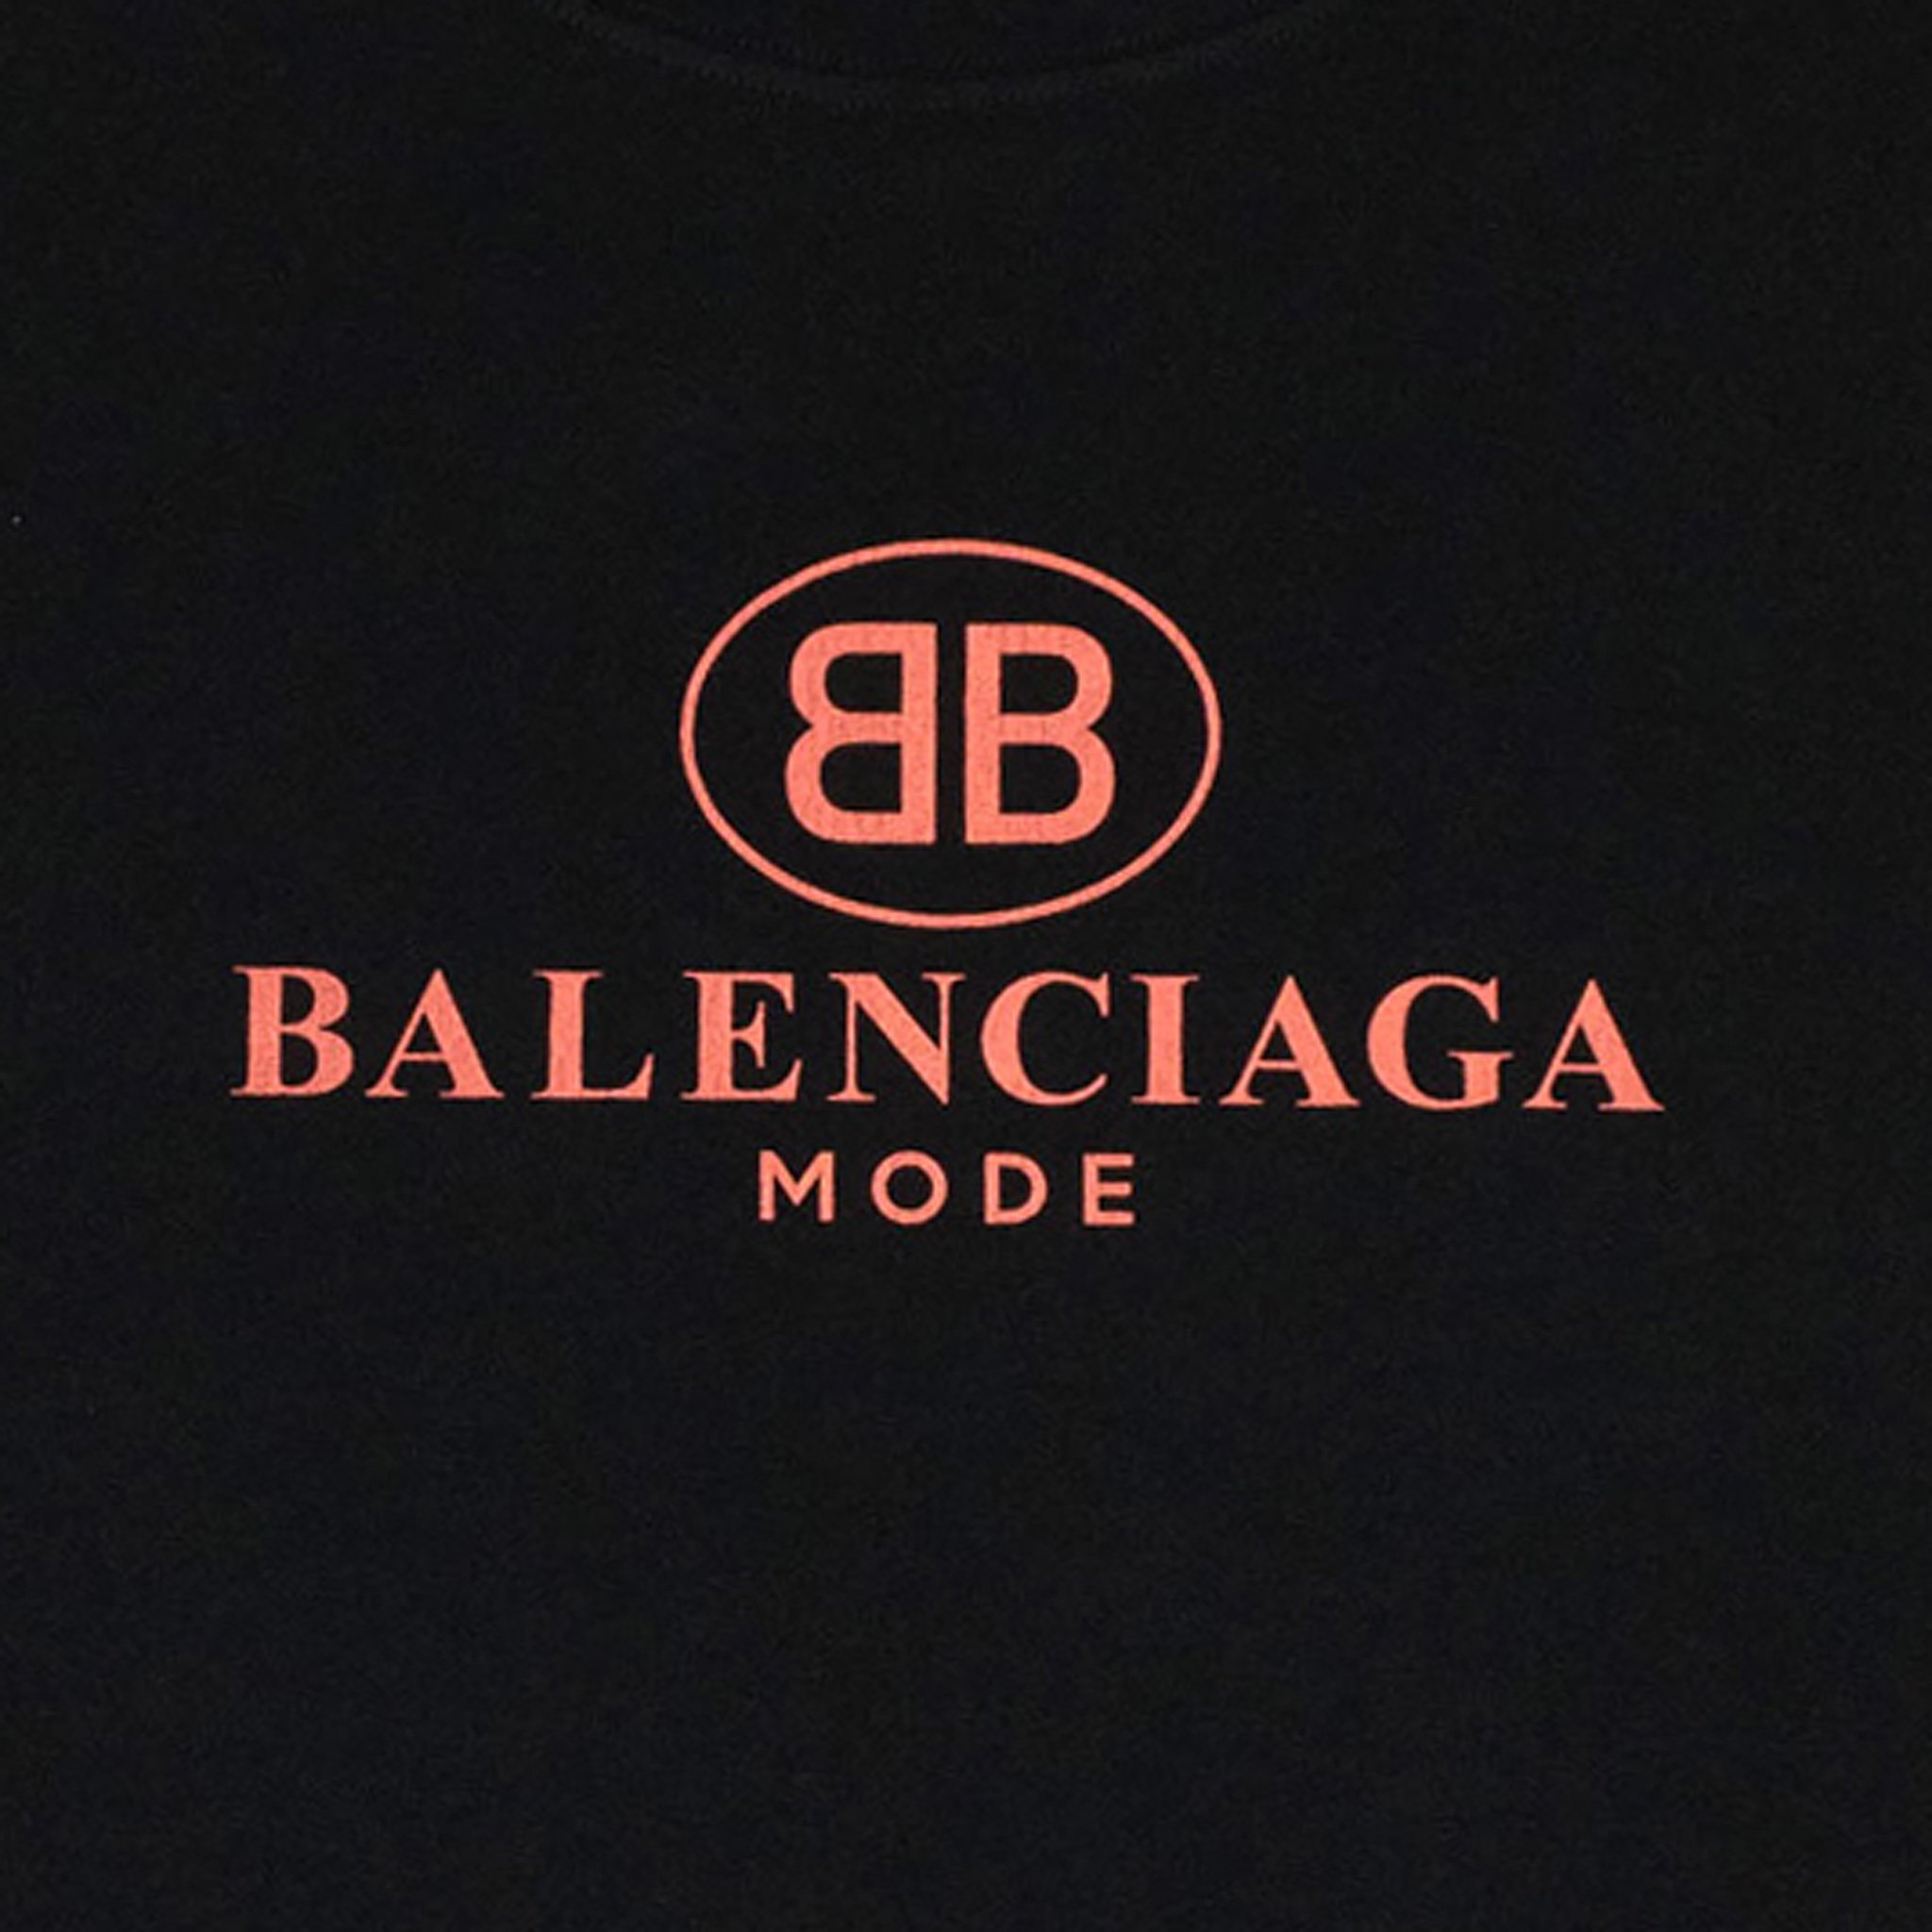 Balenciaga BB Mode T Shirt Black Pink.